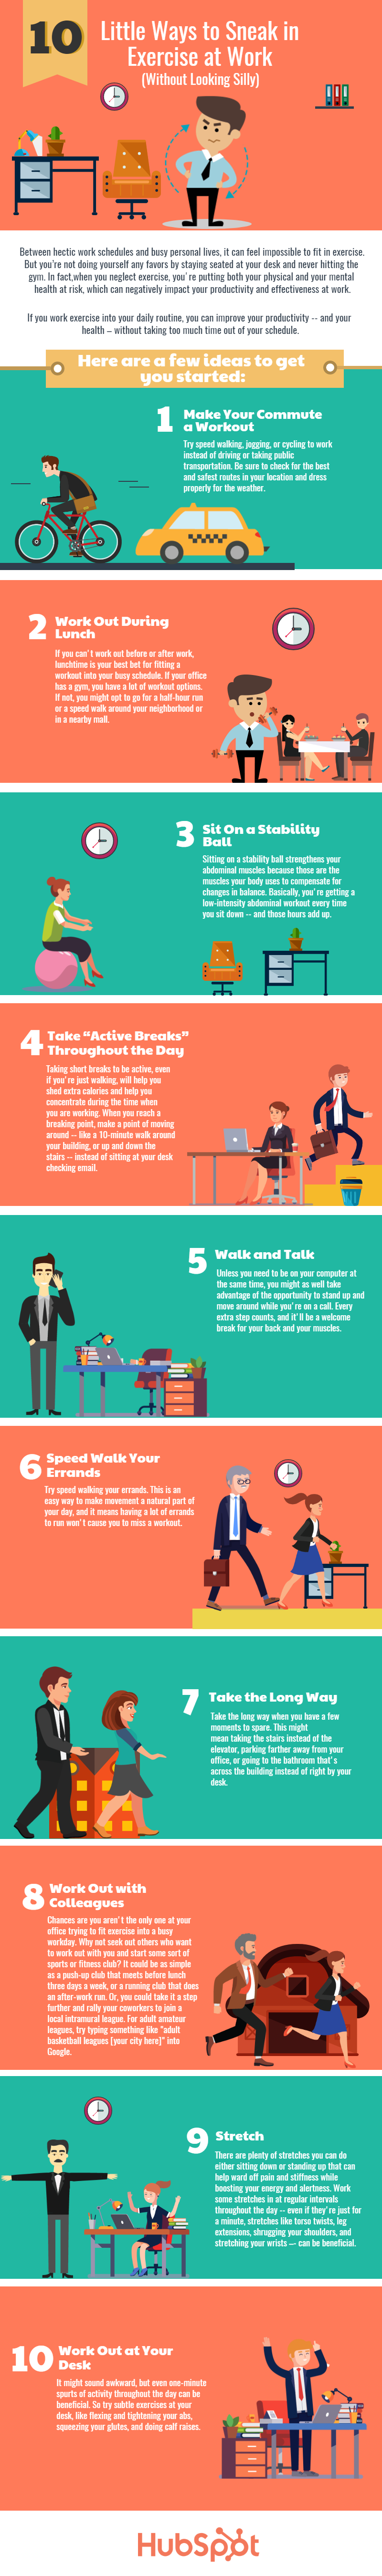 10 little ways to sneak in exercise at work without looking silly rh blog hubspot com how to exercise at your desk at work how to exercise while sitting at your desk